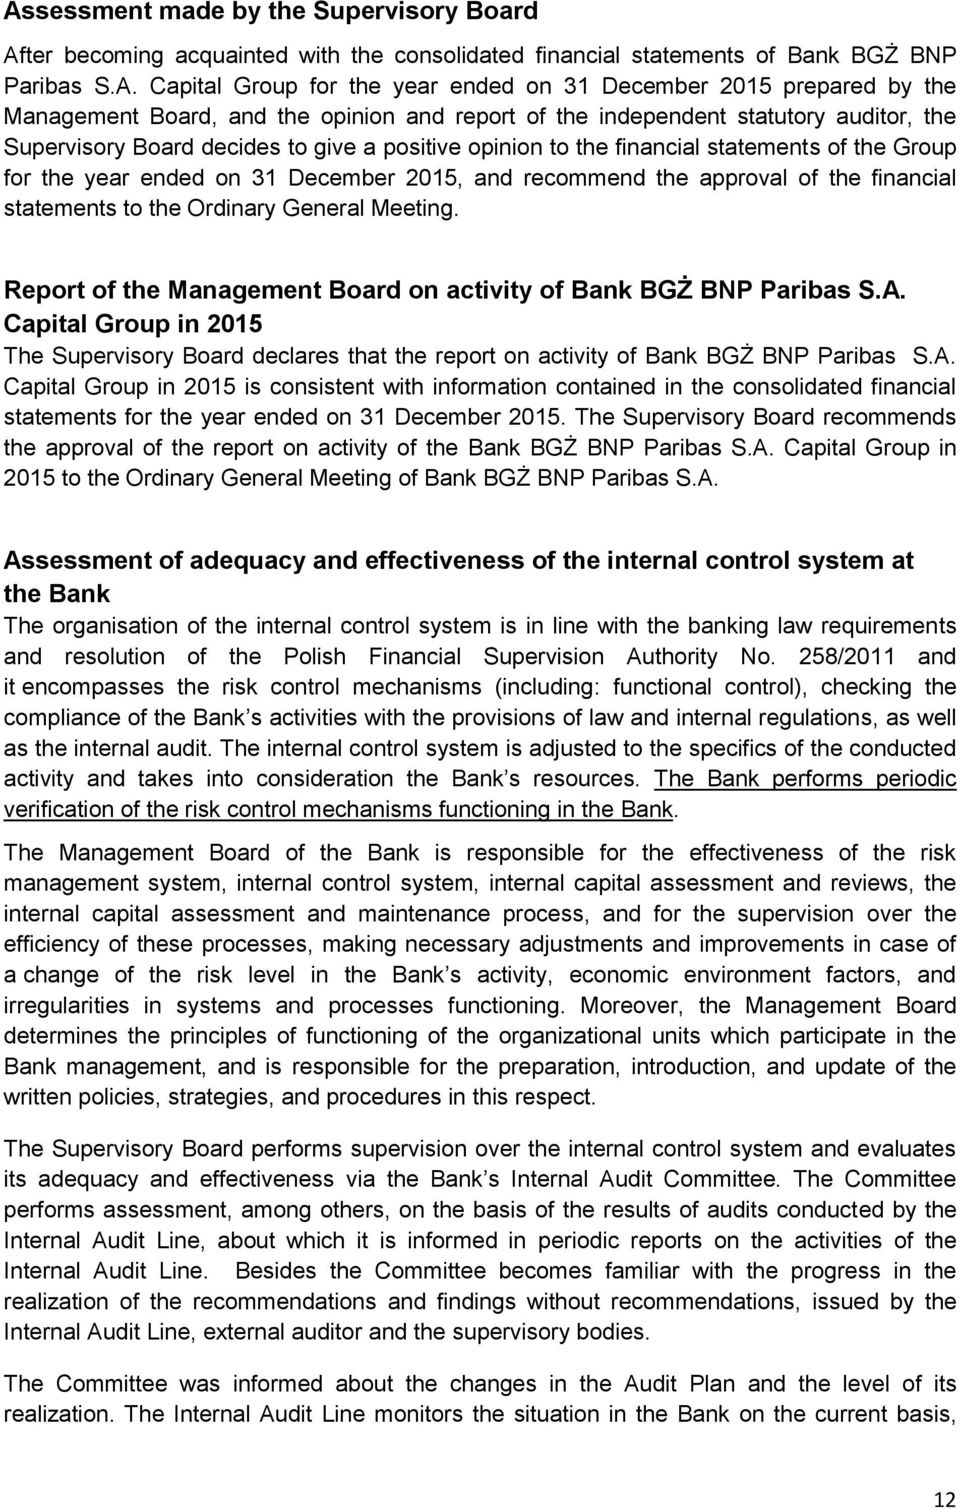 for the year ended on 31 December 2015, and recommend the approval of the financial statements to the Ordinary General Meeting. Report of the Management Board on activity of Bank BGŻ BNP Paribas S.A.